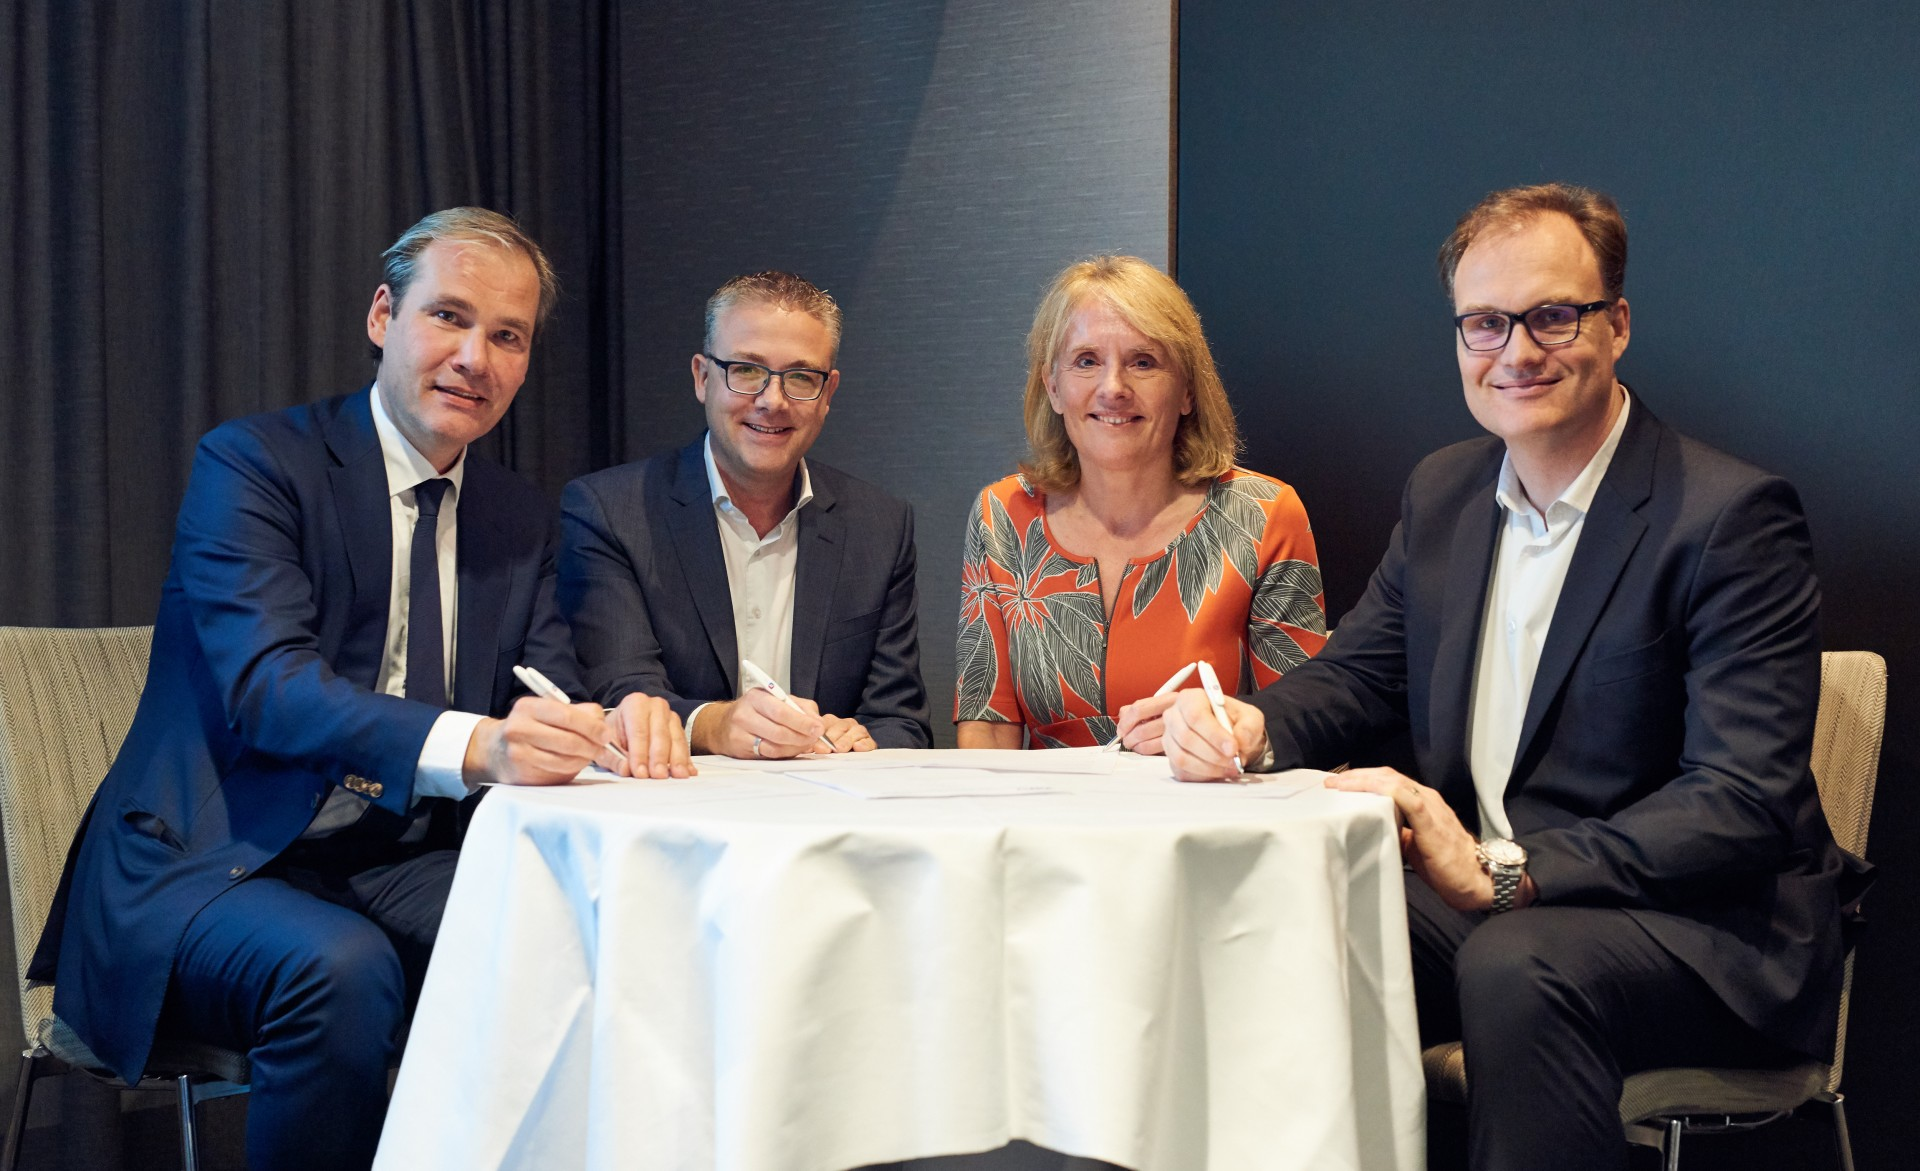 Schiphol To Collaborate With Mobile Operators On New Mobile Network